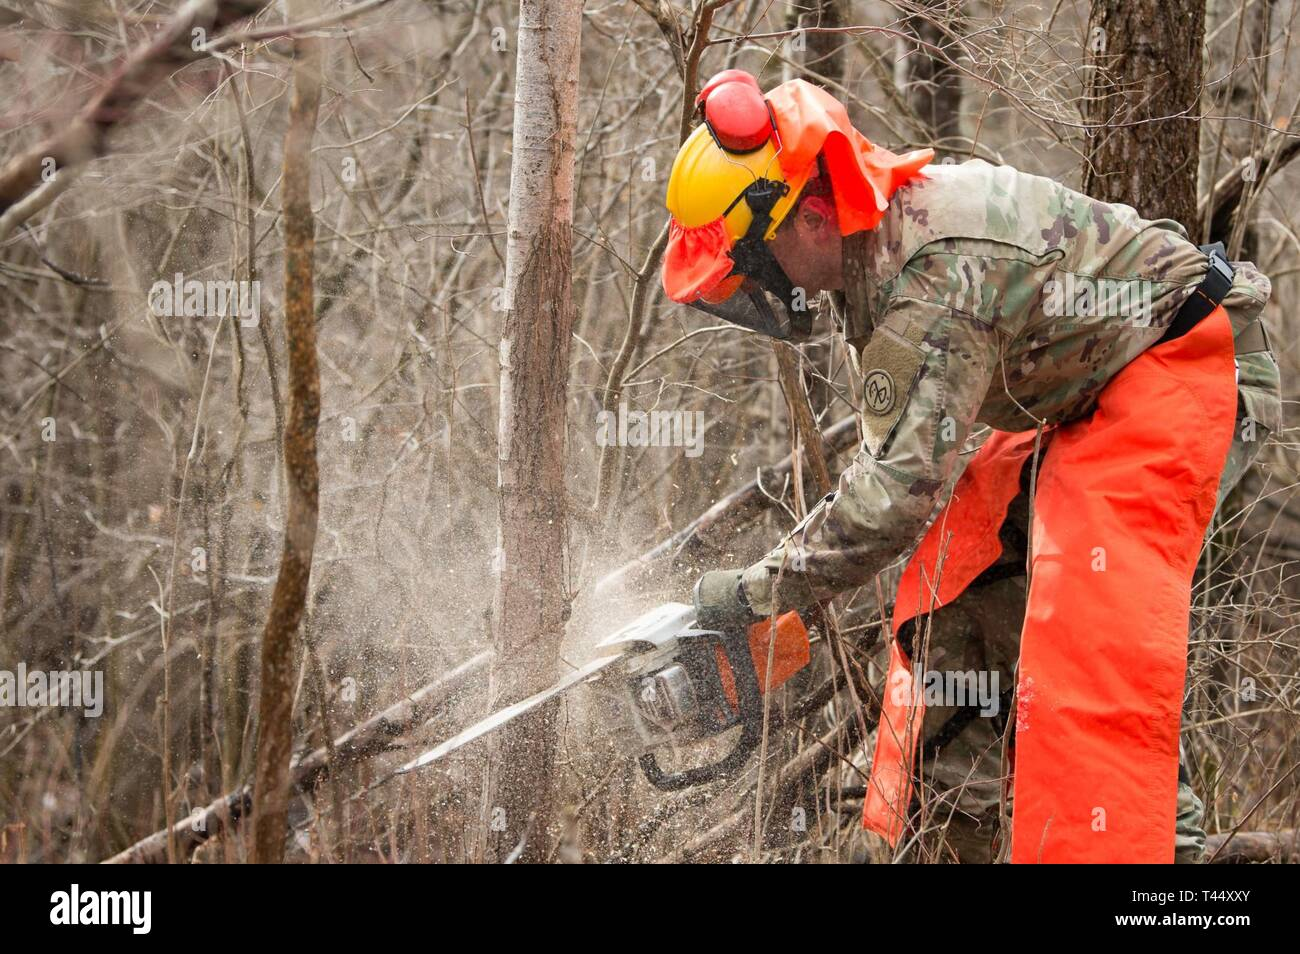 Spc. Kevin Dulinawka assigned to Echo Company, 427th Brigade Support Battalion, 152nd Brigade Engineering Battalion, 27th Infantry Brigade Combat Team, New York Army National Guard, Buffalo, creates a shower of saw dust while felling a tree at Youngstown Local Training Area, Feb. 24, 2019. The training team was composed of New York Army National Guard and New York Guard Soldiers. They trained on how to use the equipment properly and safely. These Soldiers are just a few of more than 250 Soldiers and Airmen that are deployed to Western New York for debris clearing missions in support of Operati - Stock Image